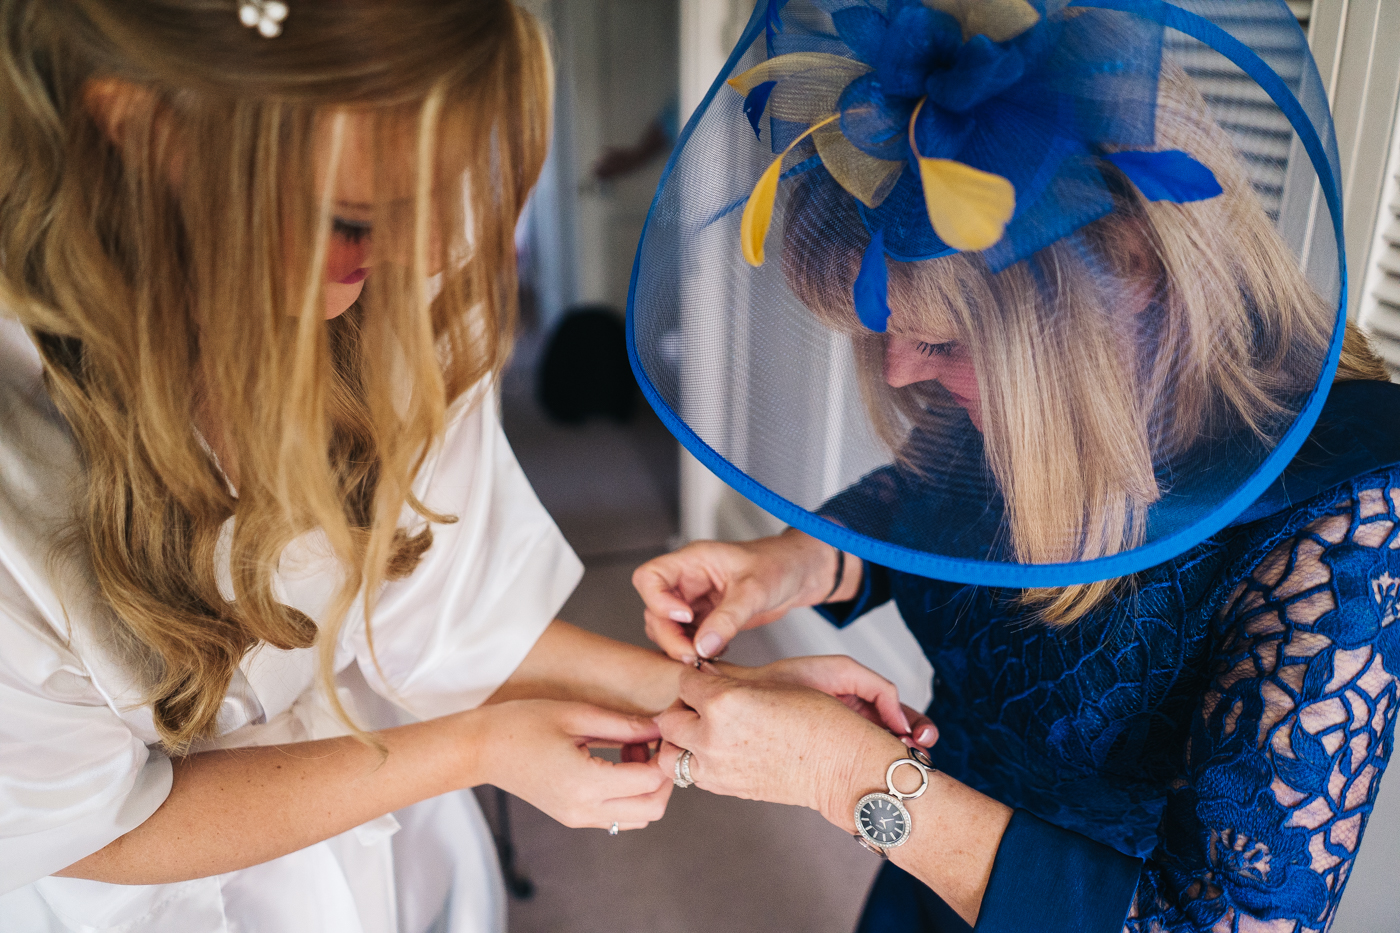 the bride's mum attached a bracelet to her wrist. wedding at laskill house north yorkshire helmsley wedding photographer north east teesside